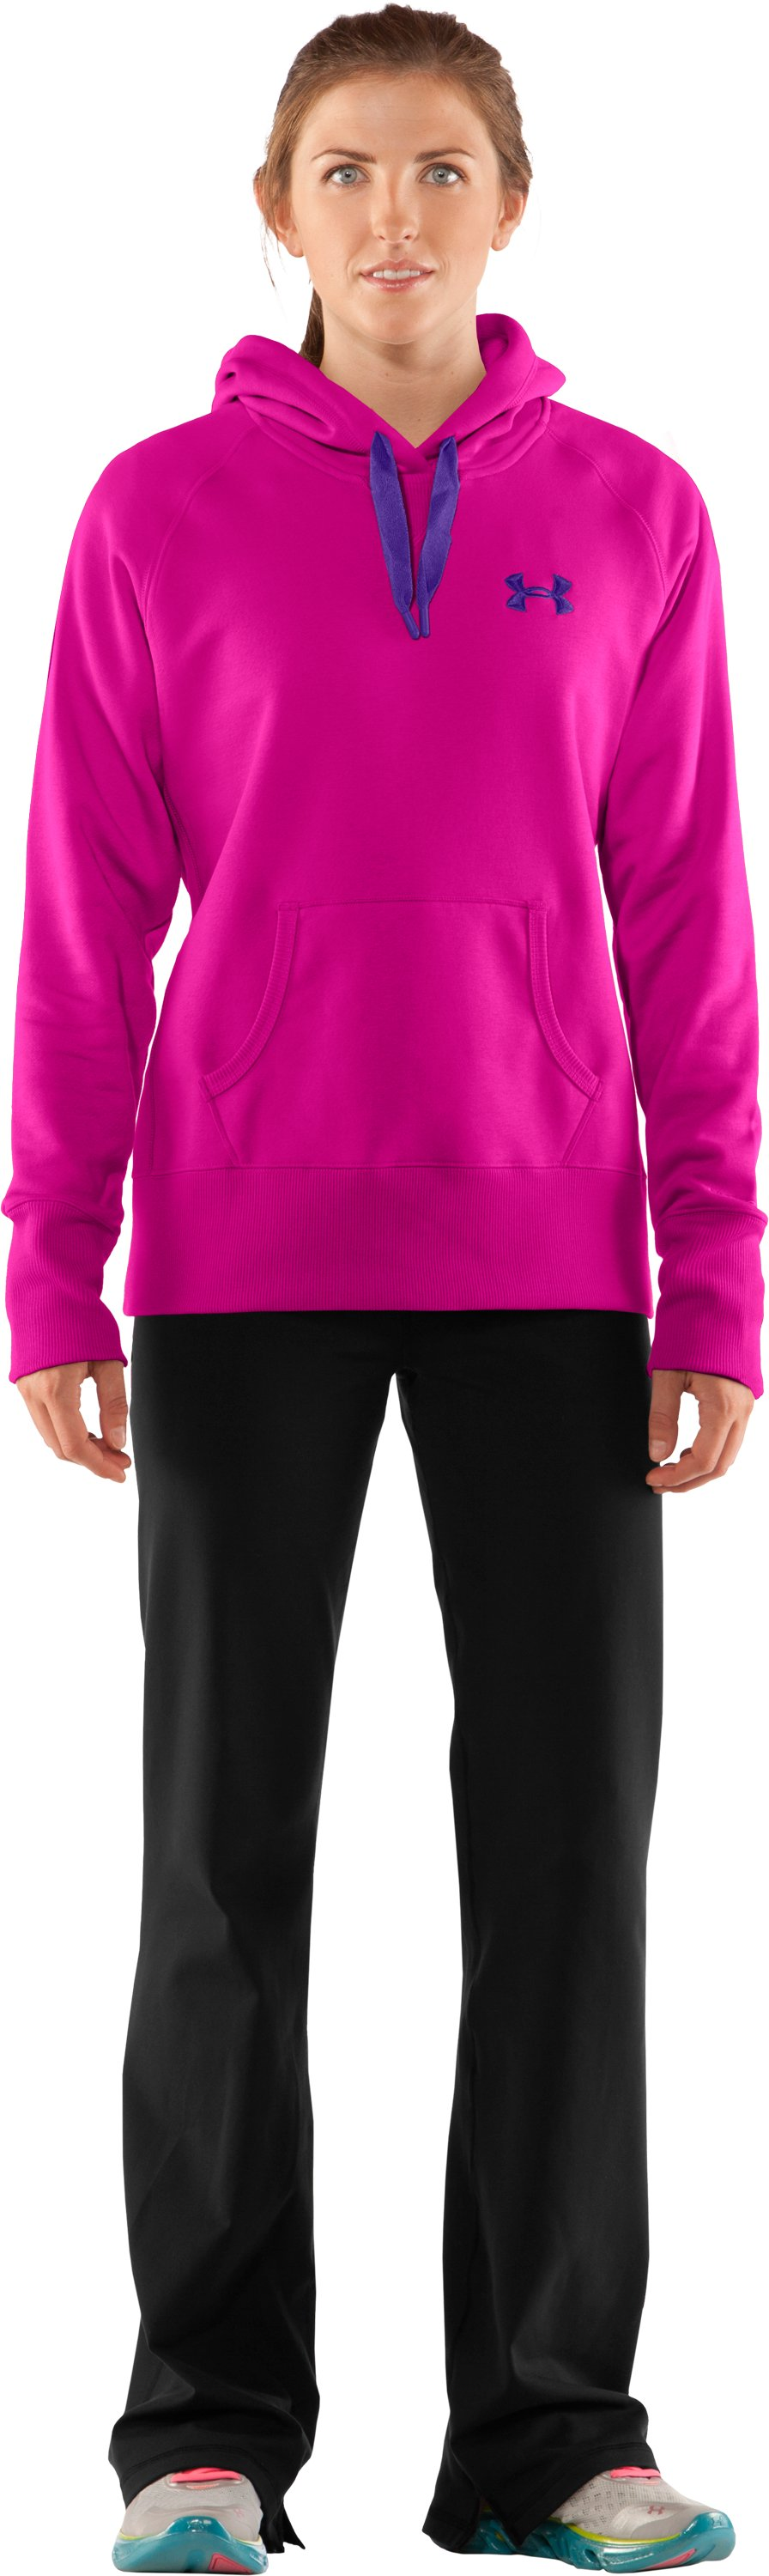 Women's Charged Cotton® Storm Hoodie, Tropic Pink, zoomed image